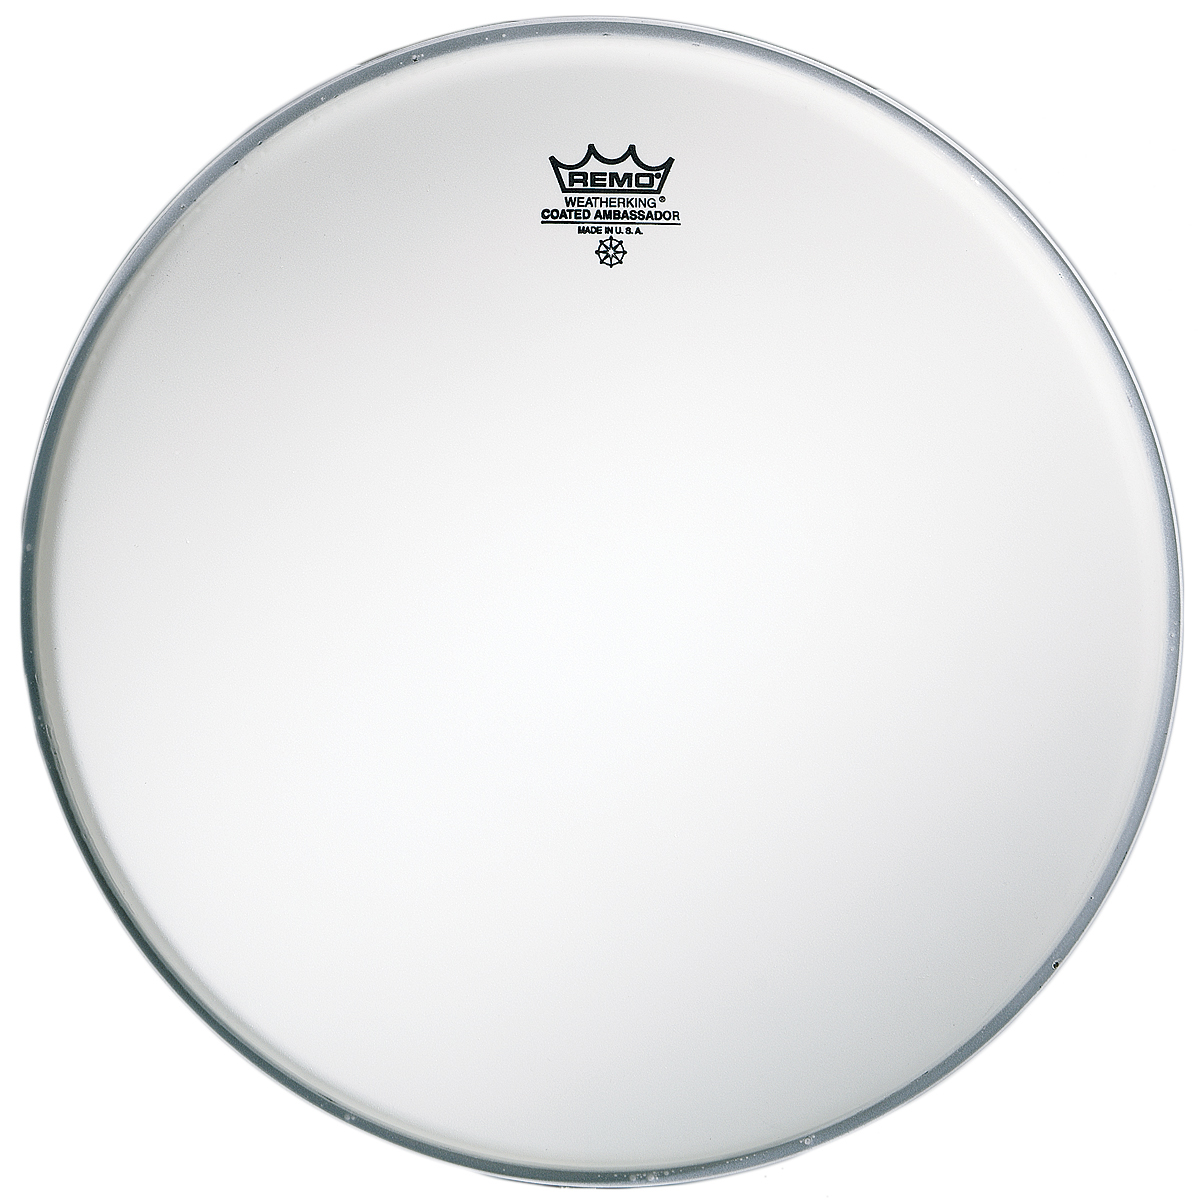 "Remo 13"" Ambassador Coated Drum Head"